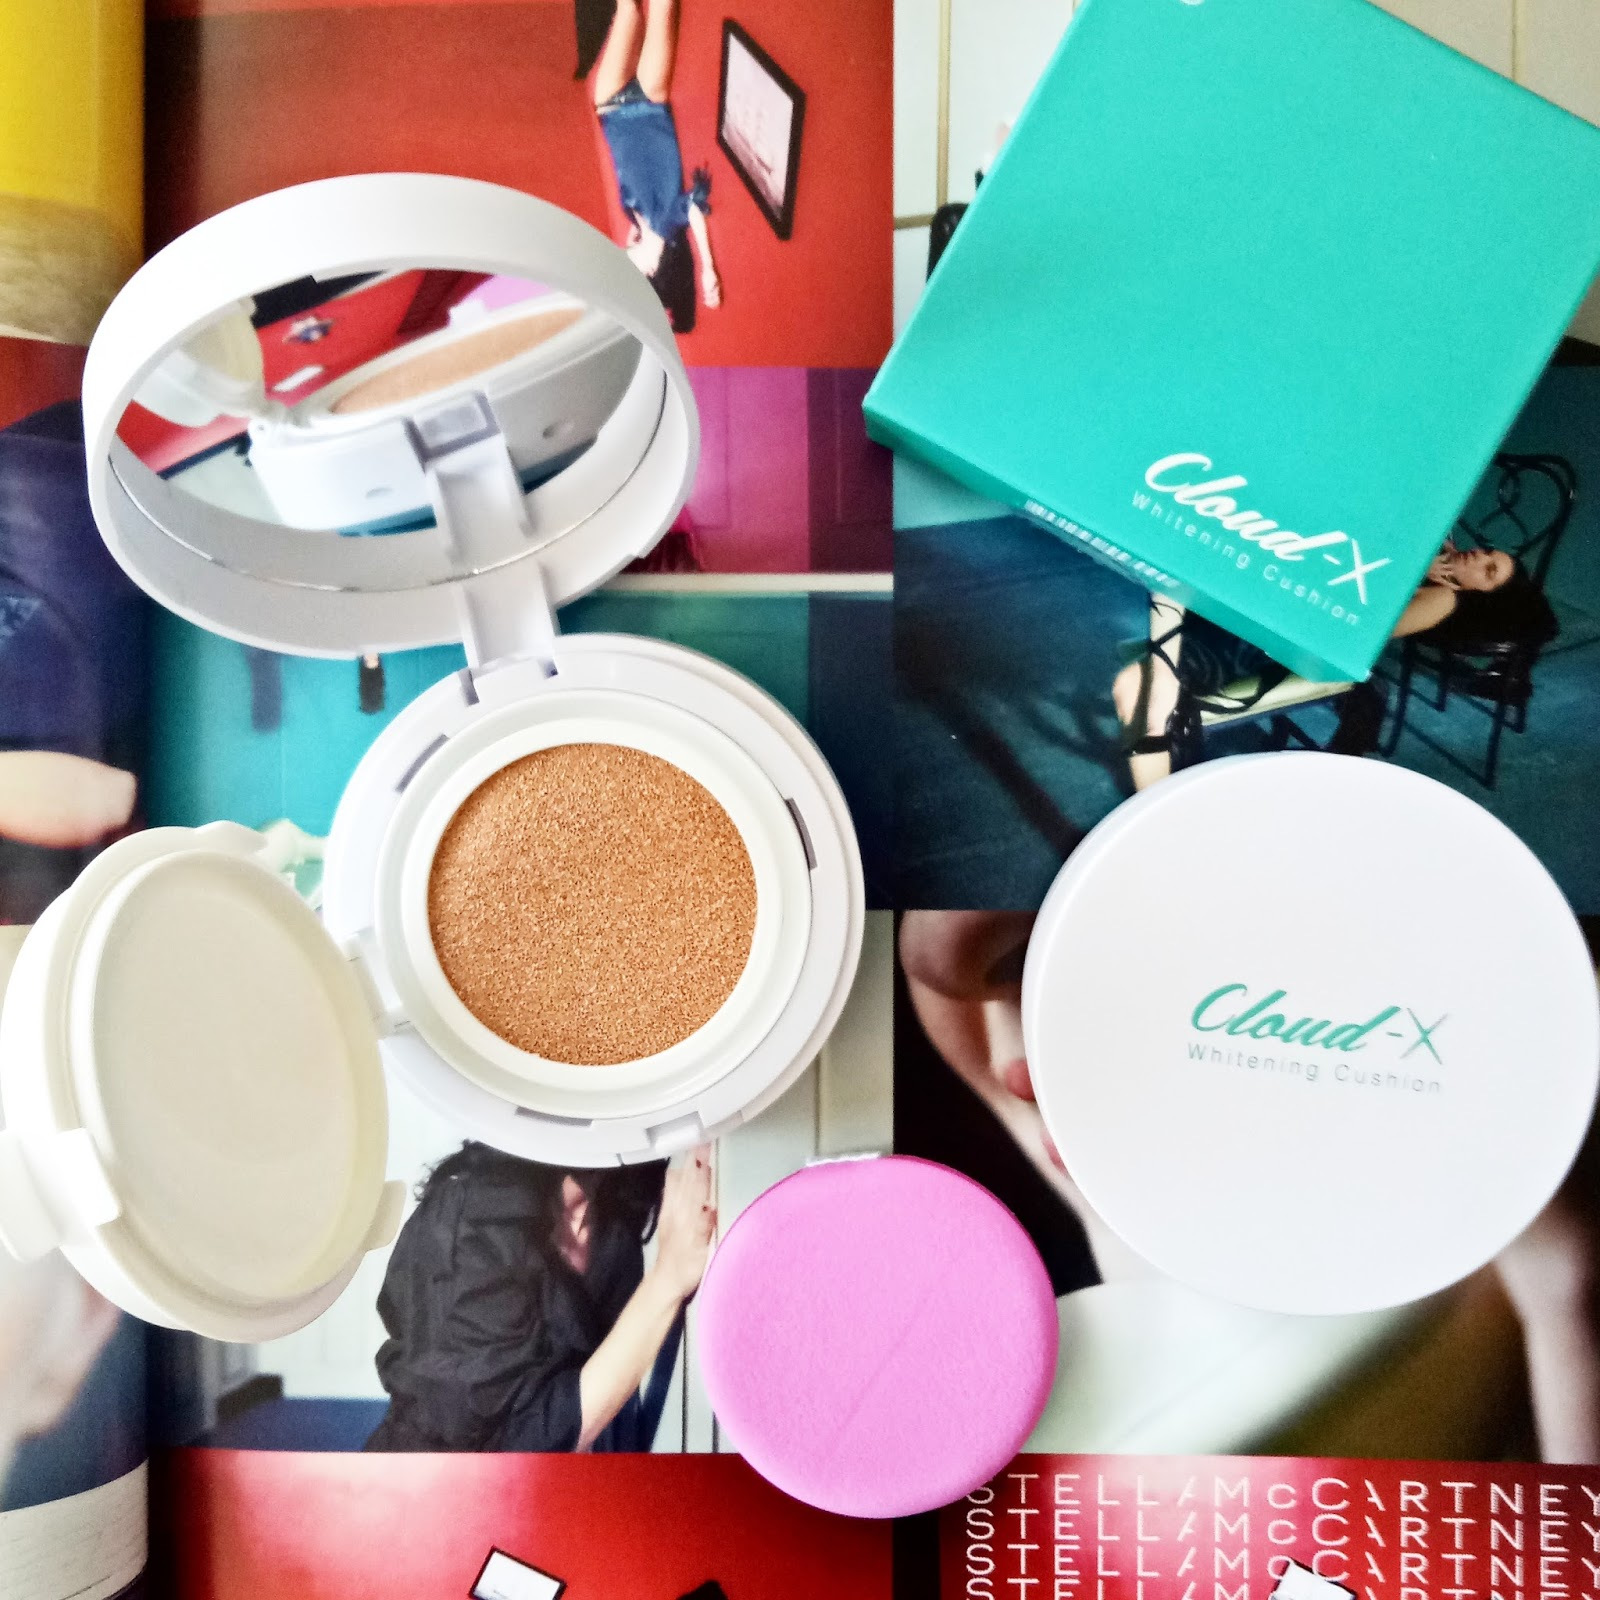 Cloud X Whitening Cushion, September Collection, Korean Products Iloilo